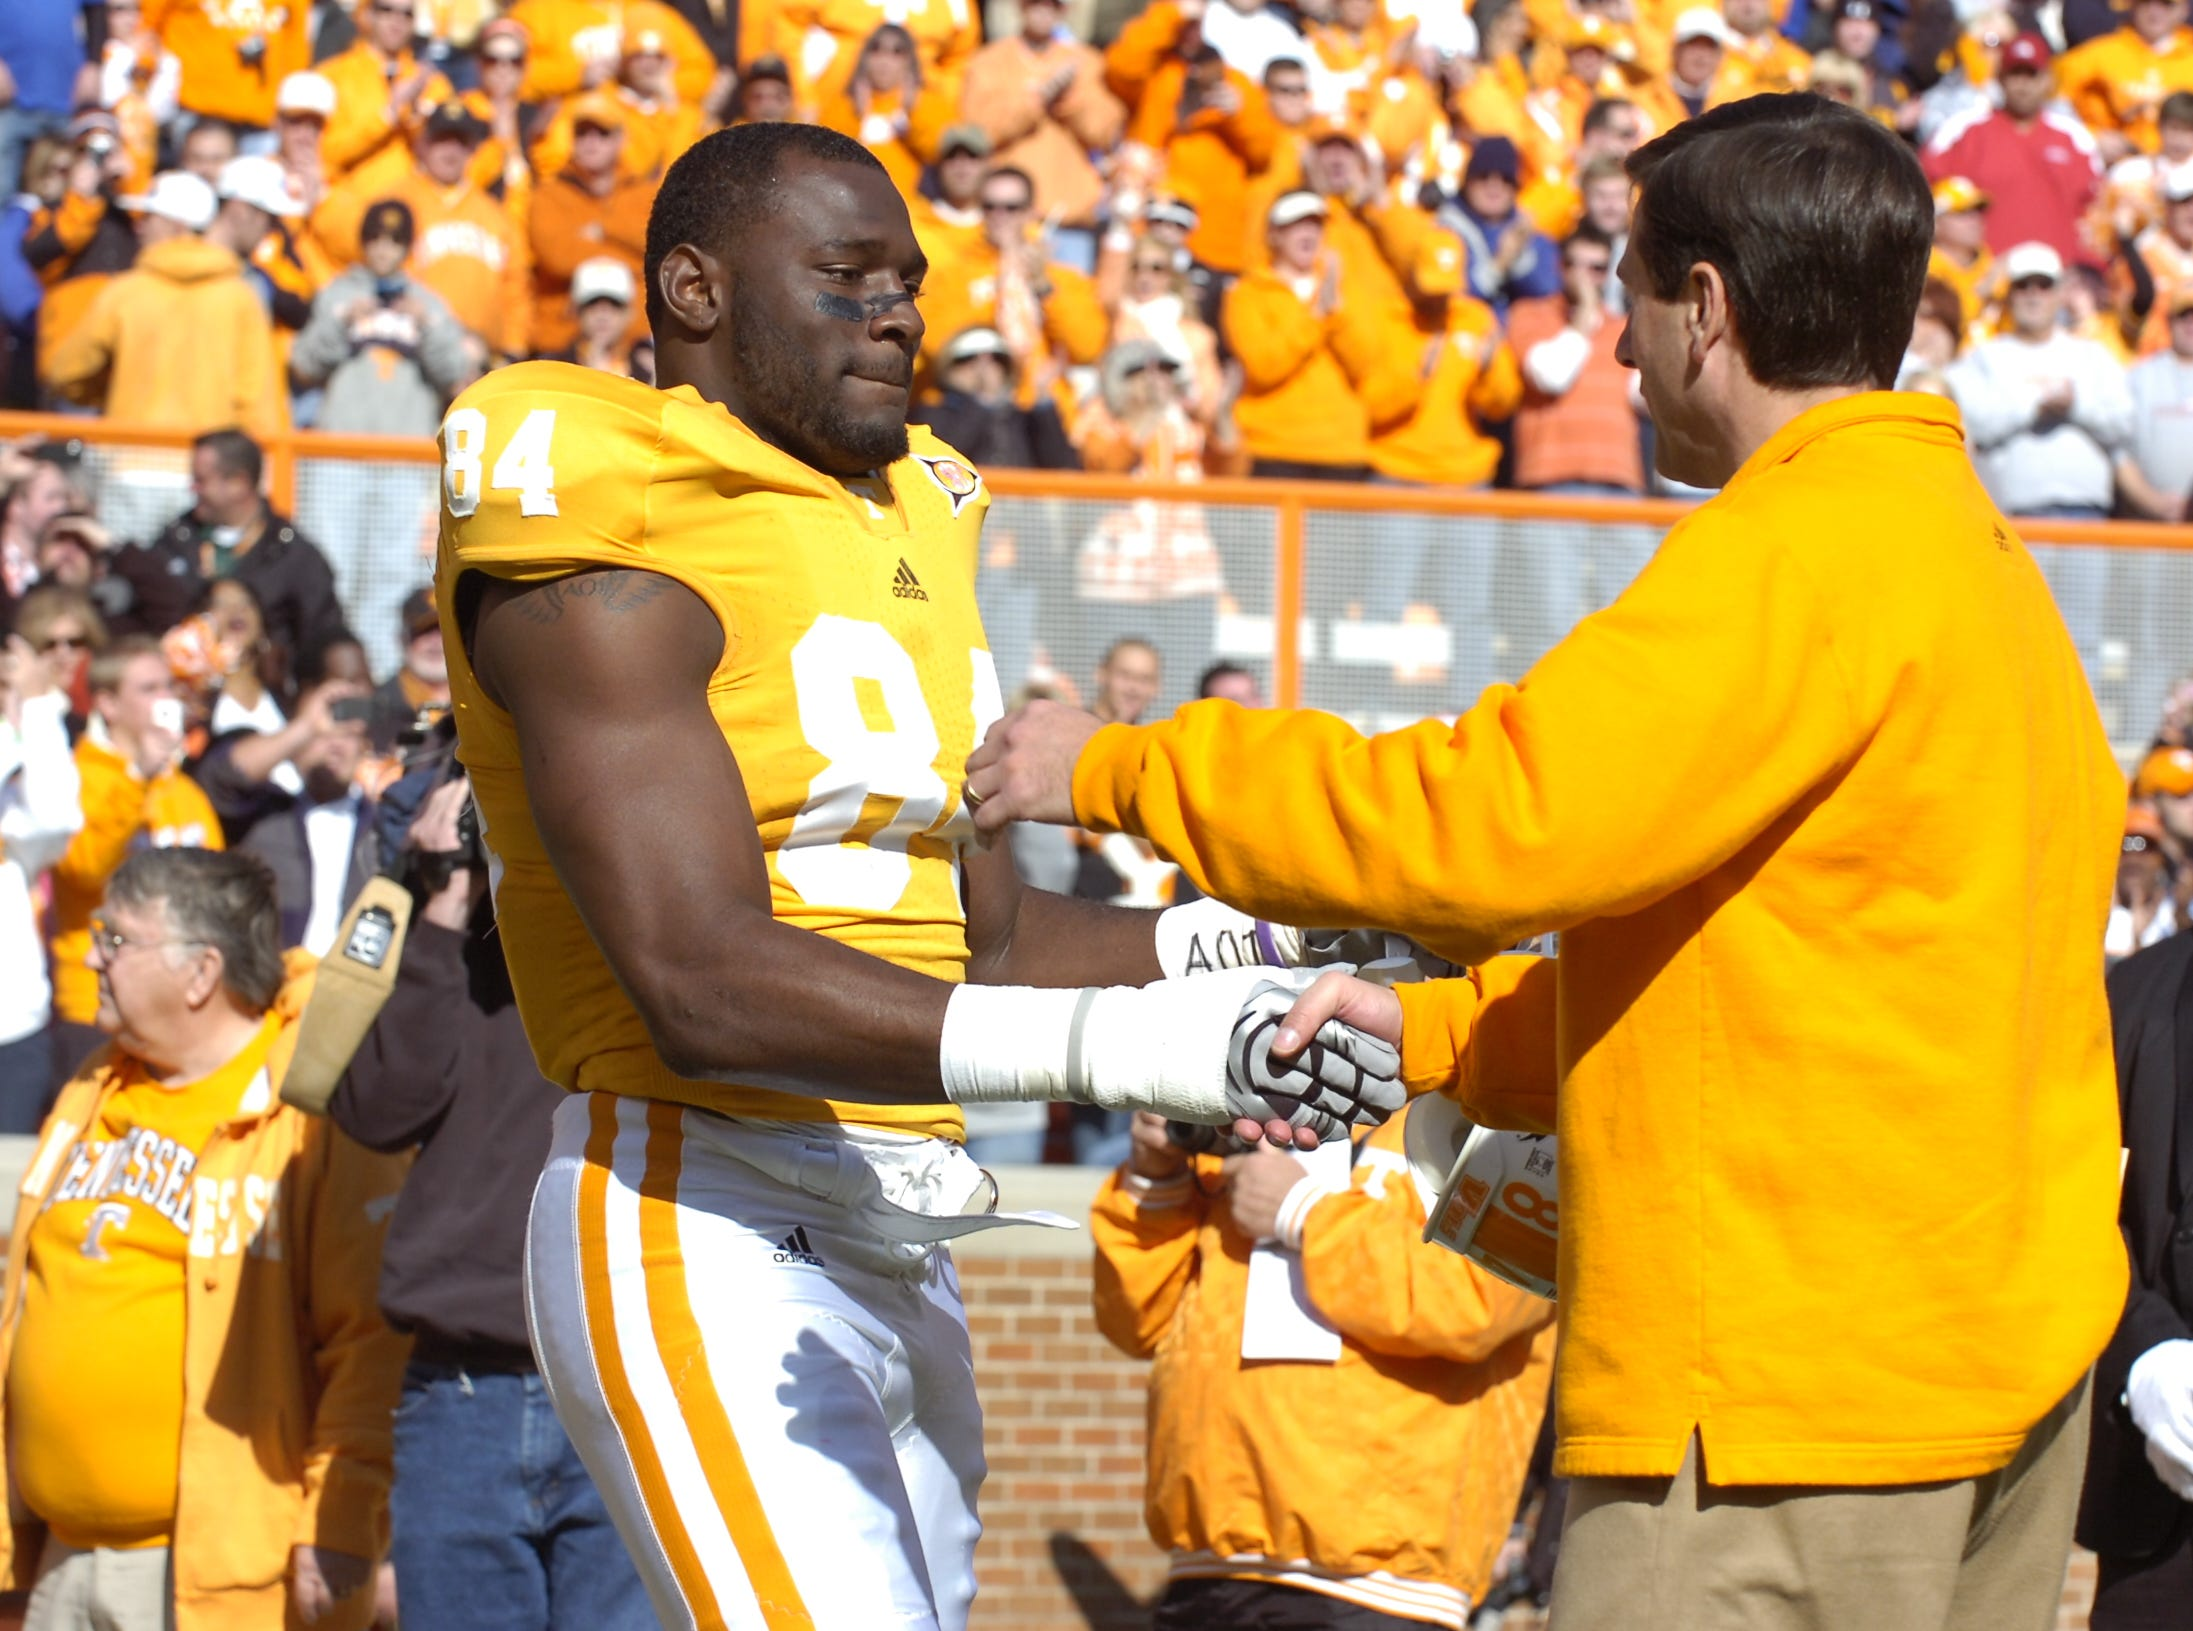 Tennessee coach Derek Dooley greets Chris Walker as part of senior day before the Kentucky game at Neyland Stadium on Nov. 27, 2010.